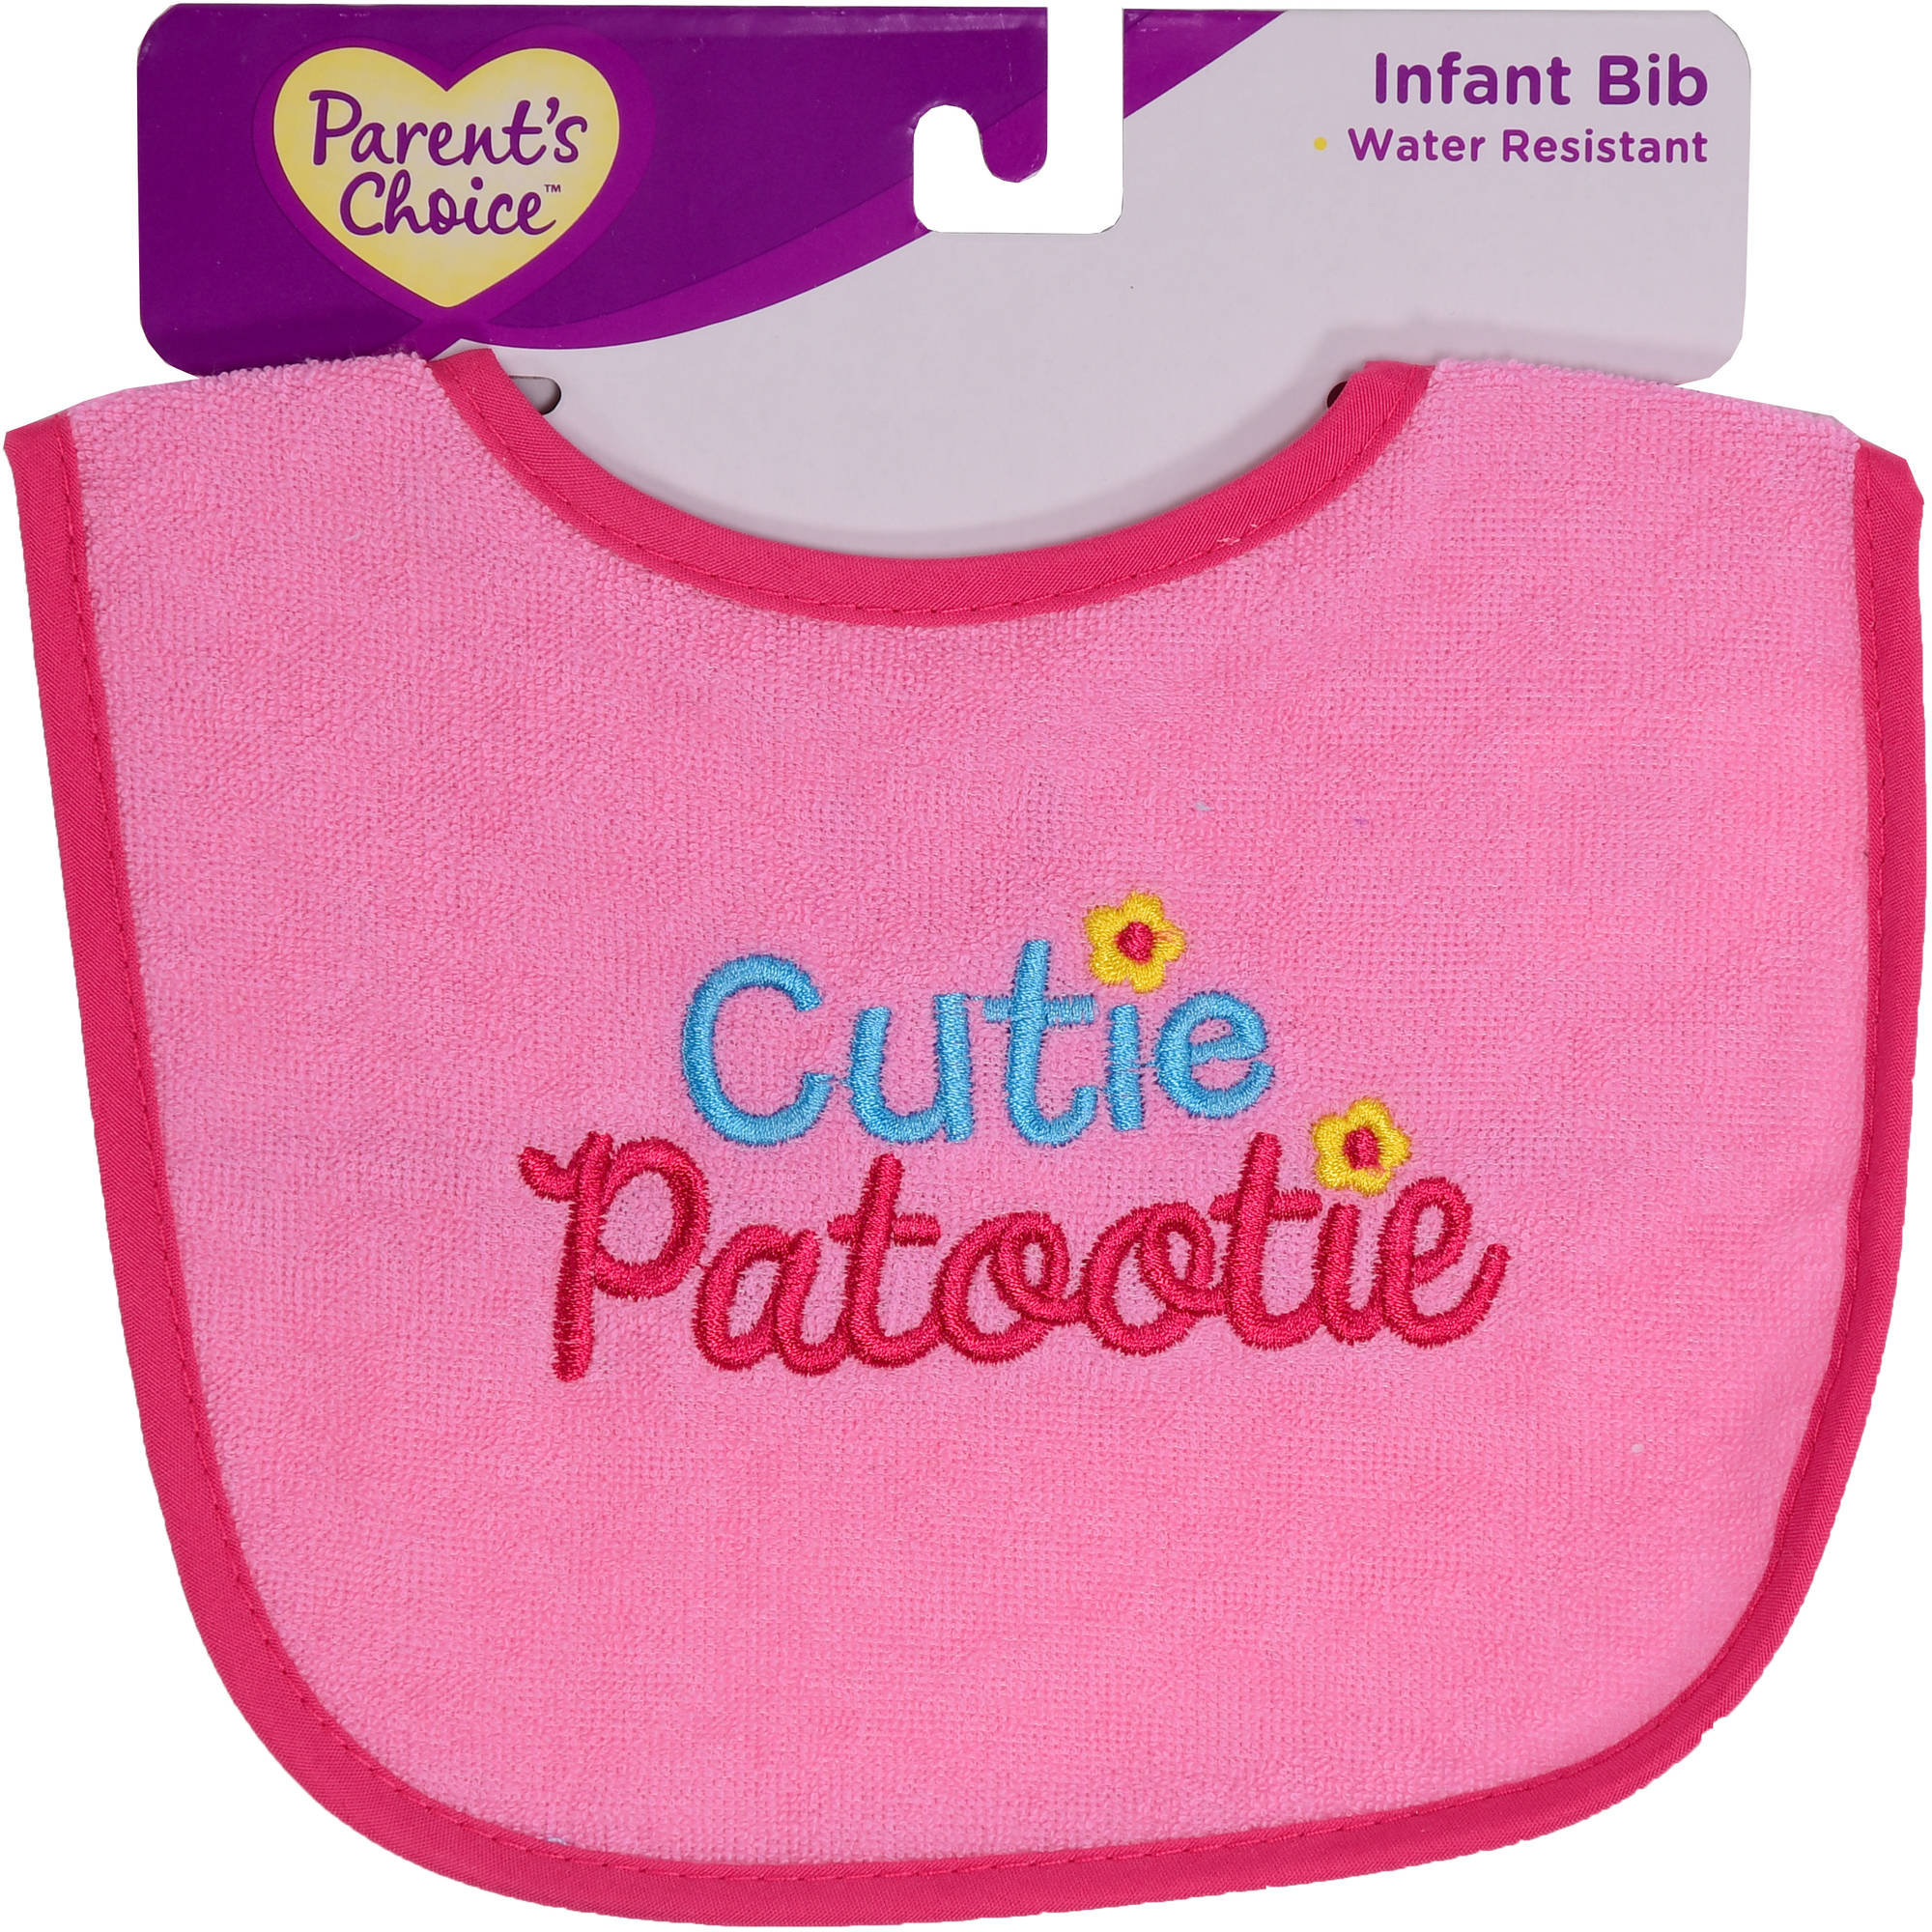 Parent's Choice Infant Bib, Pink, 1 Count